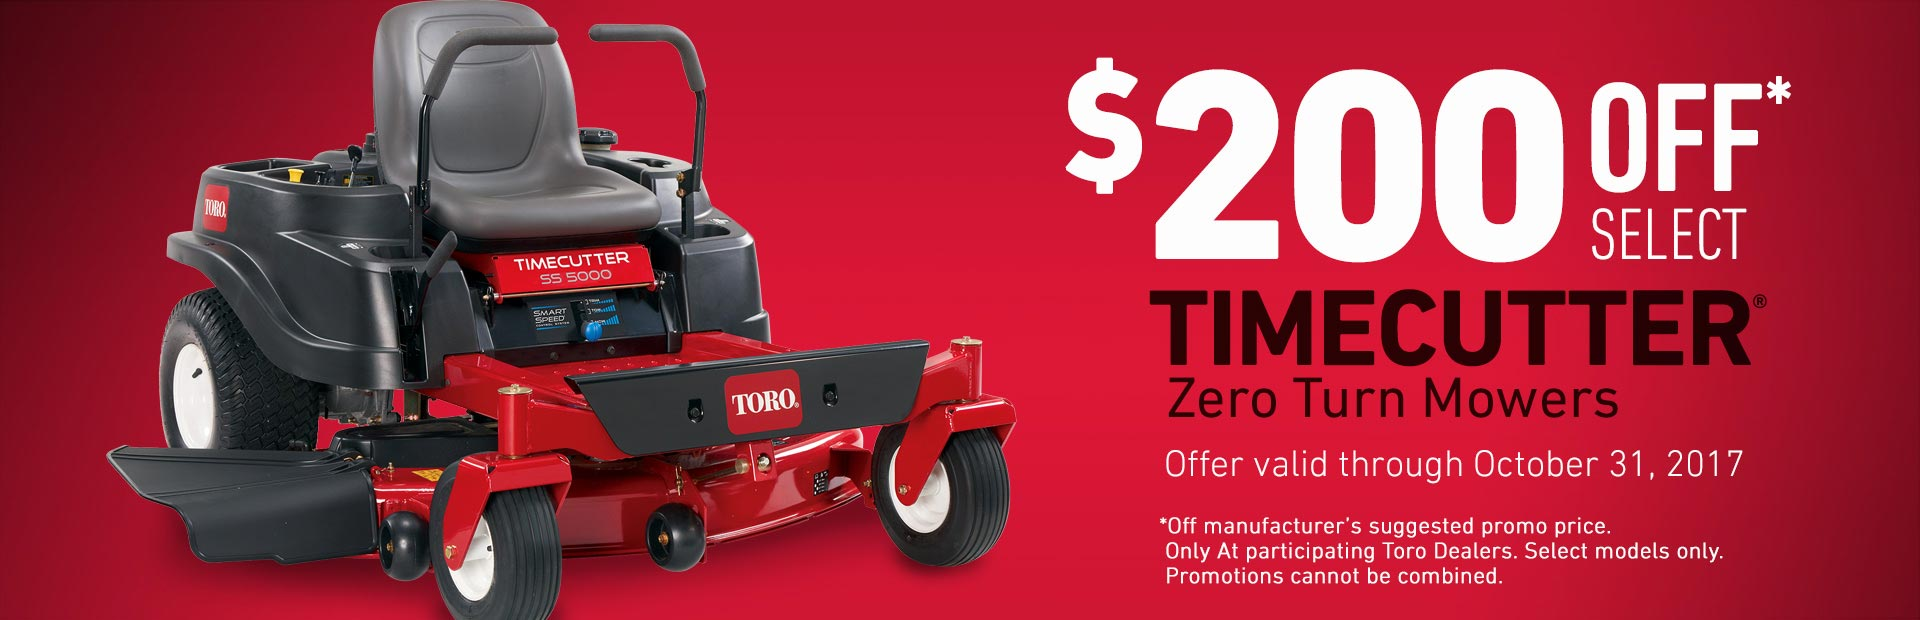 $200 Off Select TimeCutter SS5000 Mowers